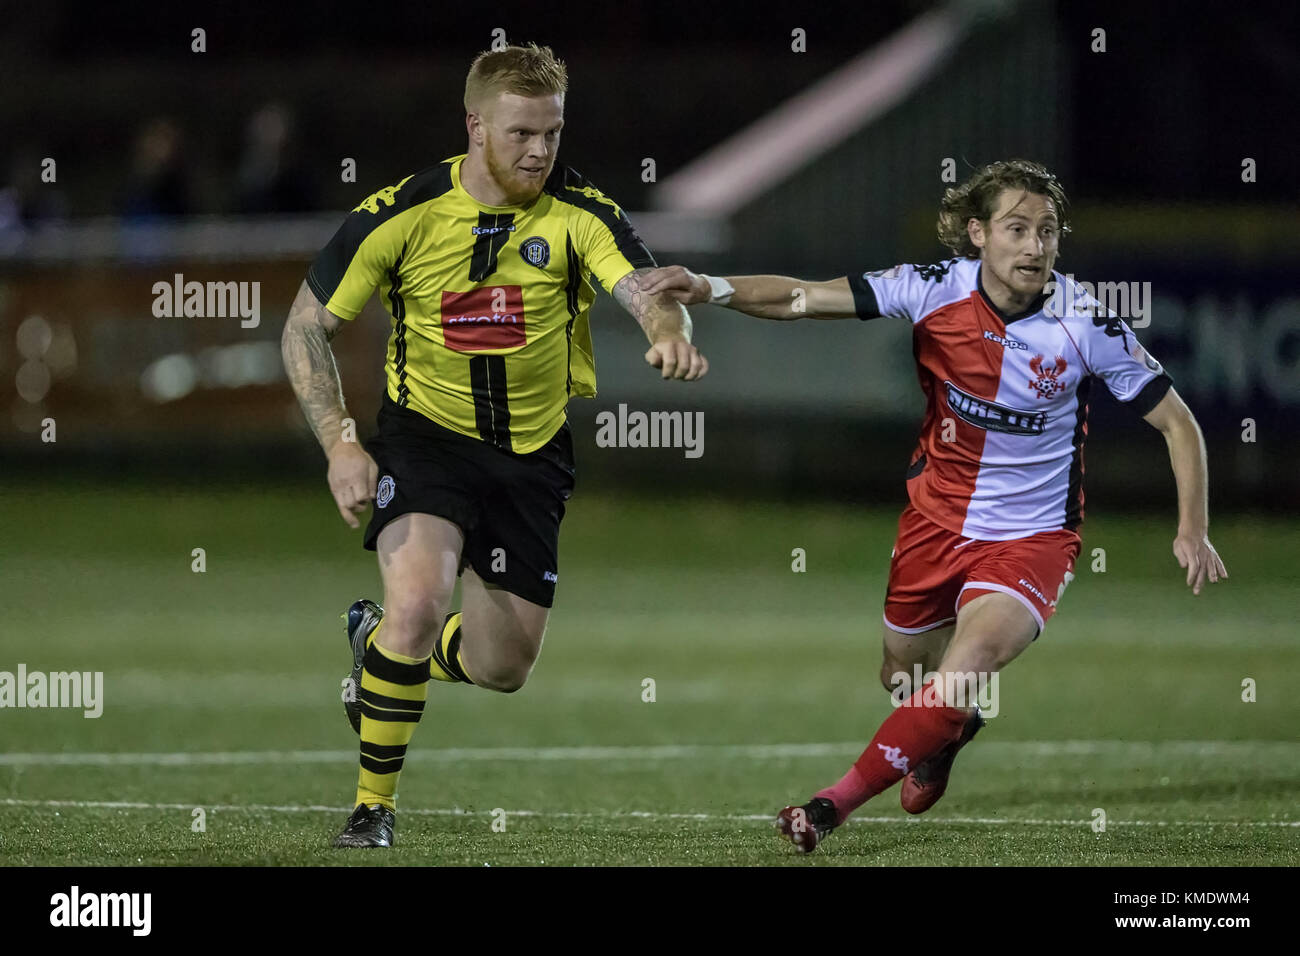 Terry Kennedy (Harrogate Town) runs with the ball during the National League North game against Kidderminster Harriers. - Stock Image